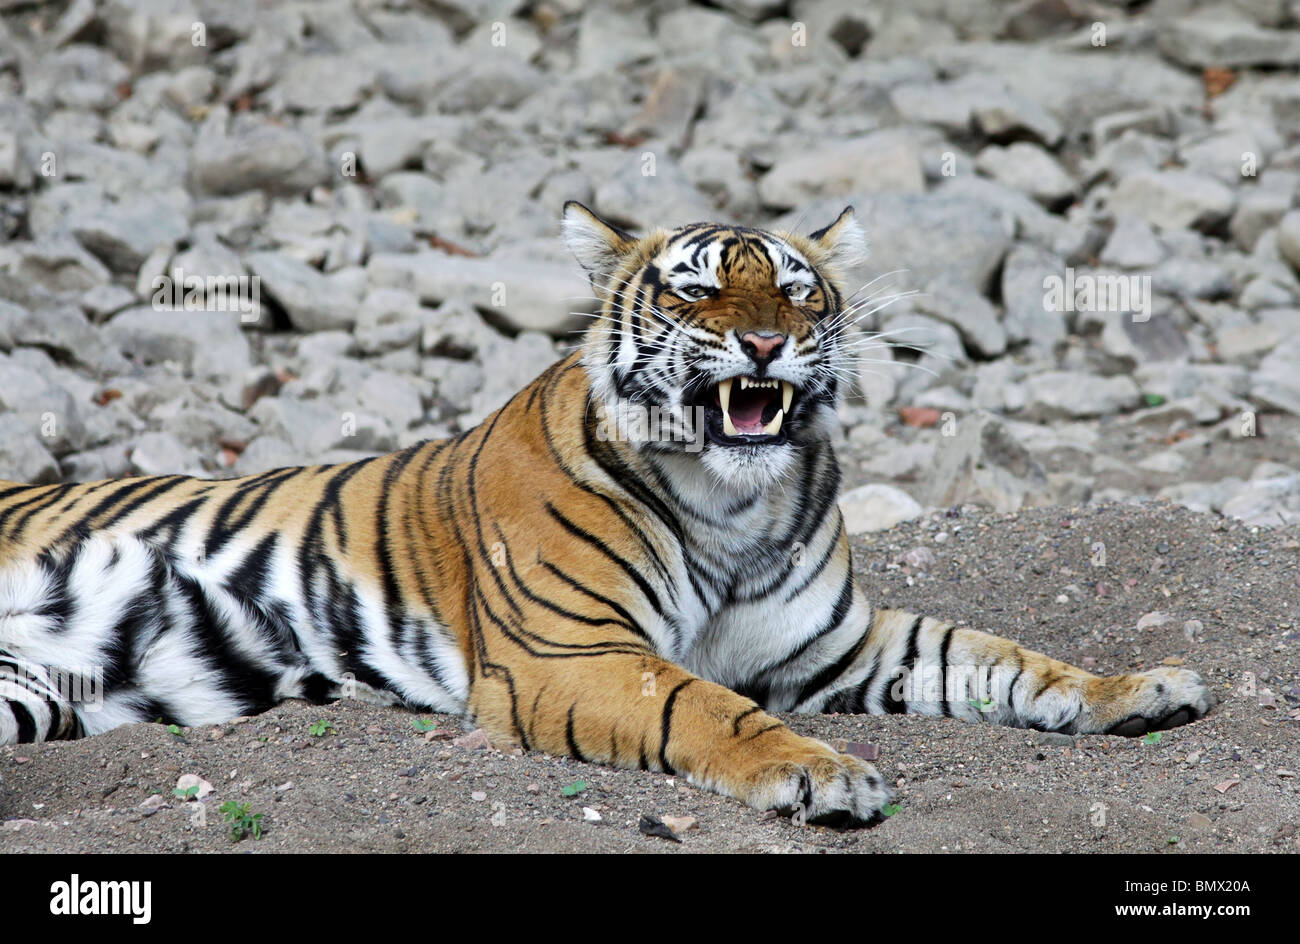 Tiger yawns and shows its canines in Ranthambhore National Park, India - Stock Image